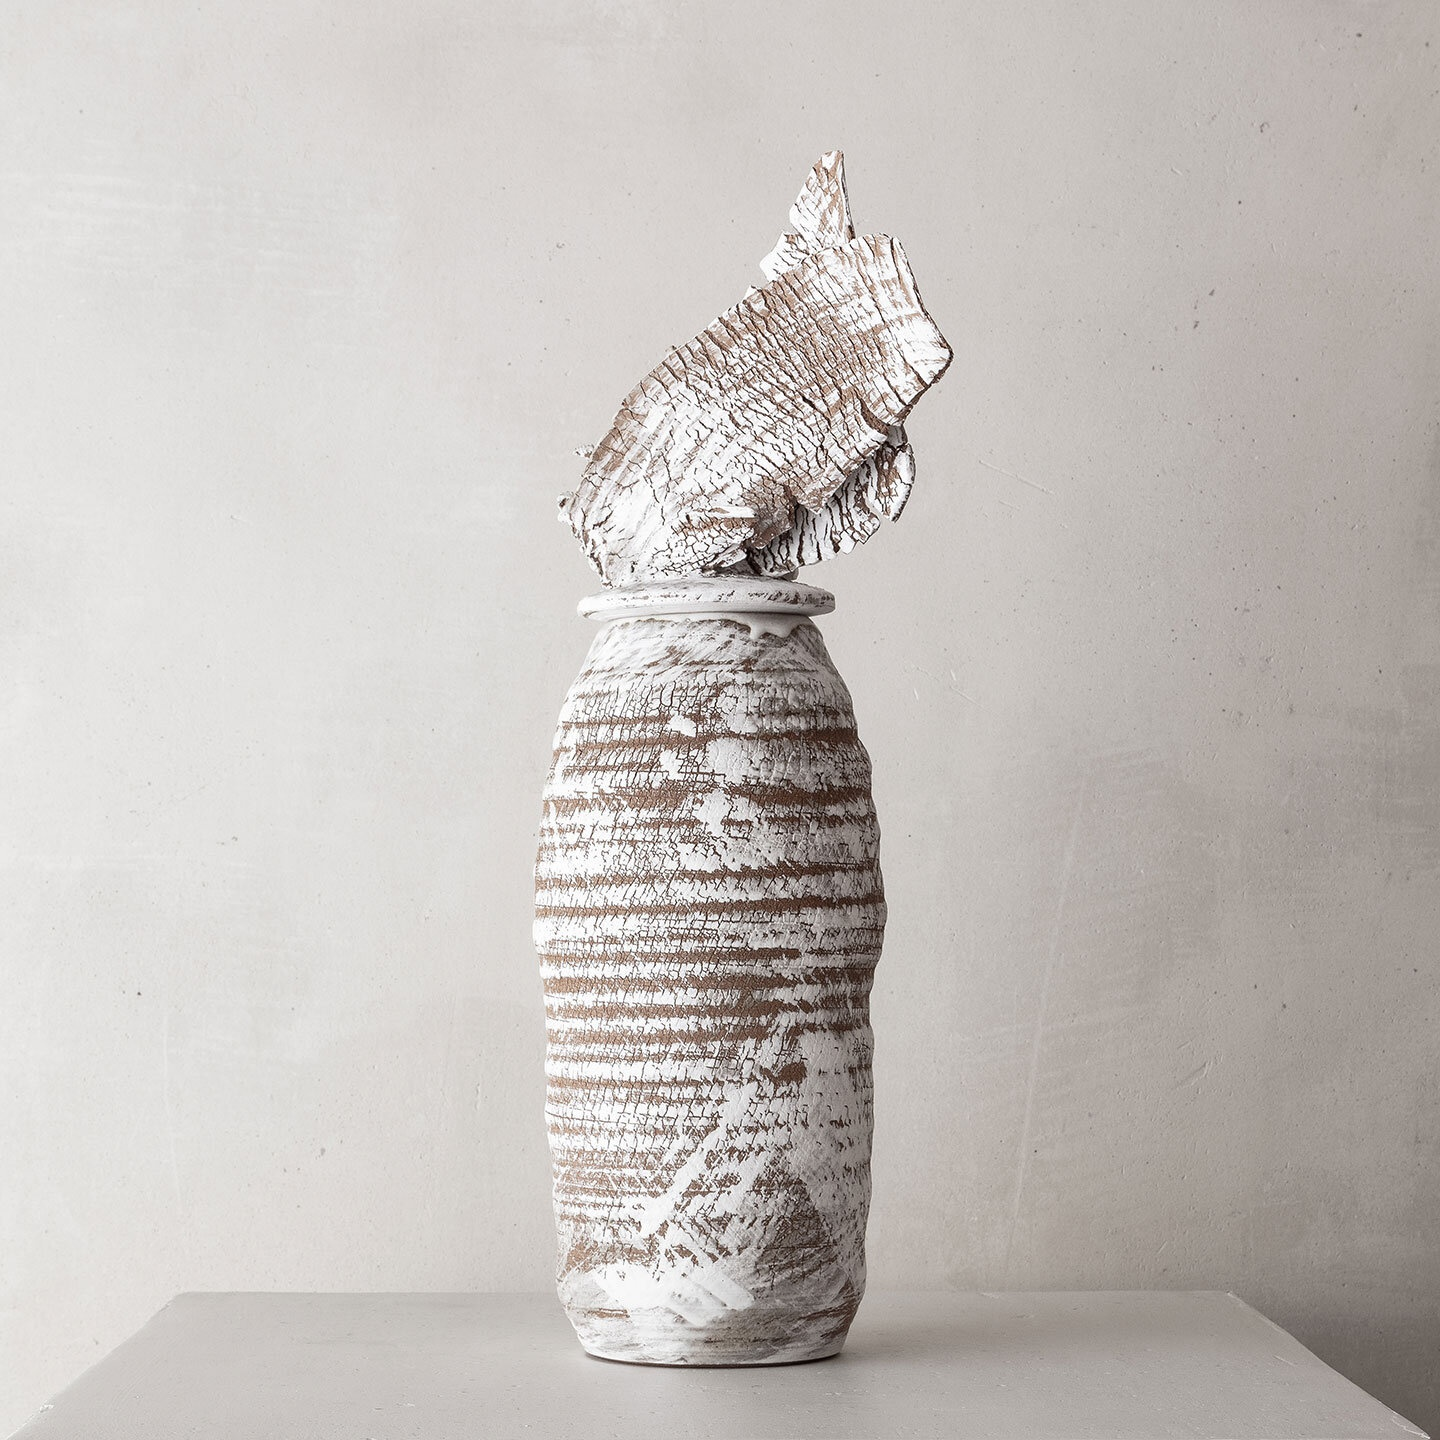 CHTHONIC VESSEL 37Peter Speliopoulos, Peter Speliopoulos Ceramics, Peter Speliopoulos Artist, Peter Speliopoulos Fashion Designer, Contemporary Ceramics, Contemporary Greek Ceramics, Interior Design Accessories.